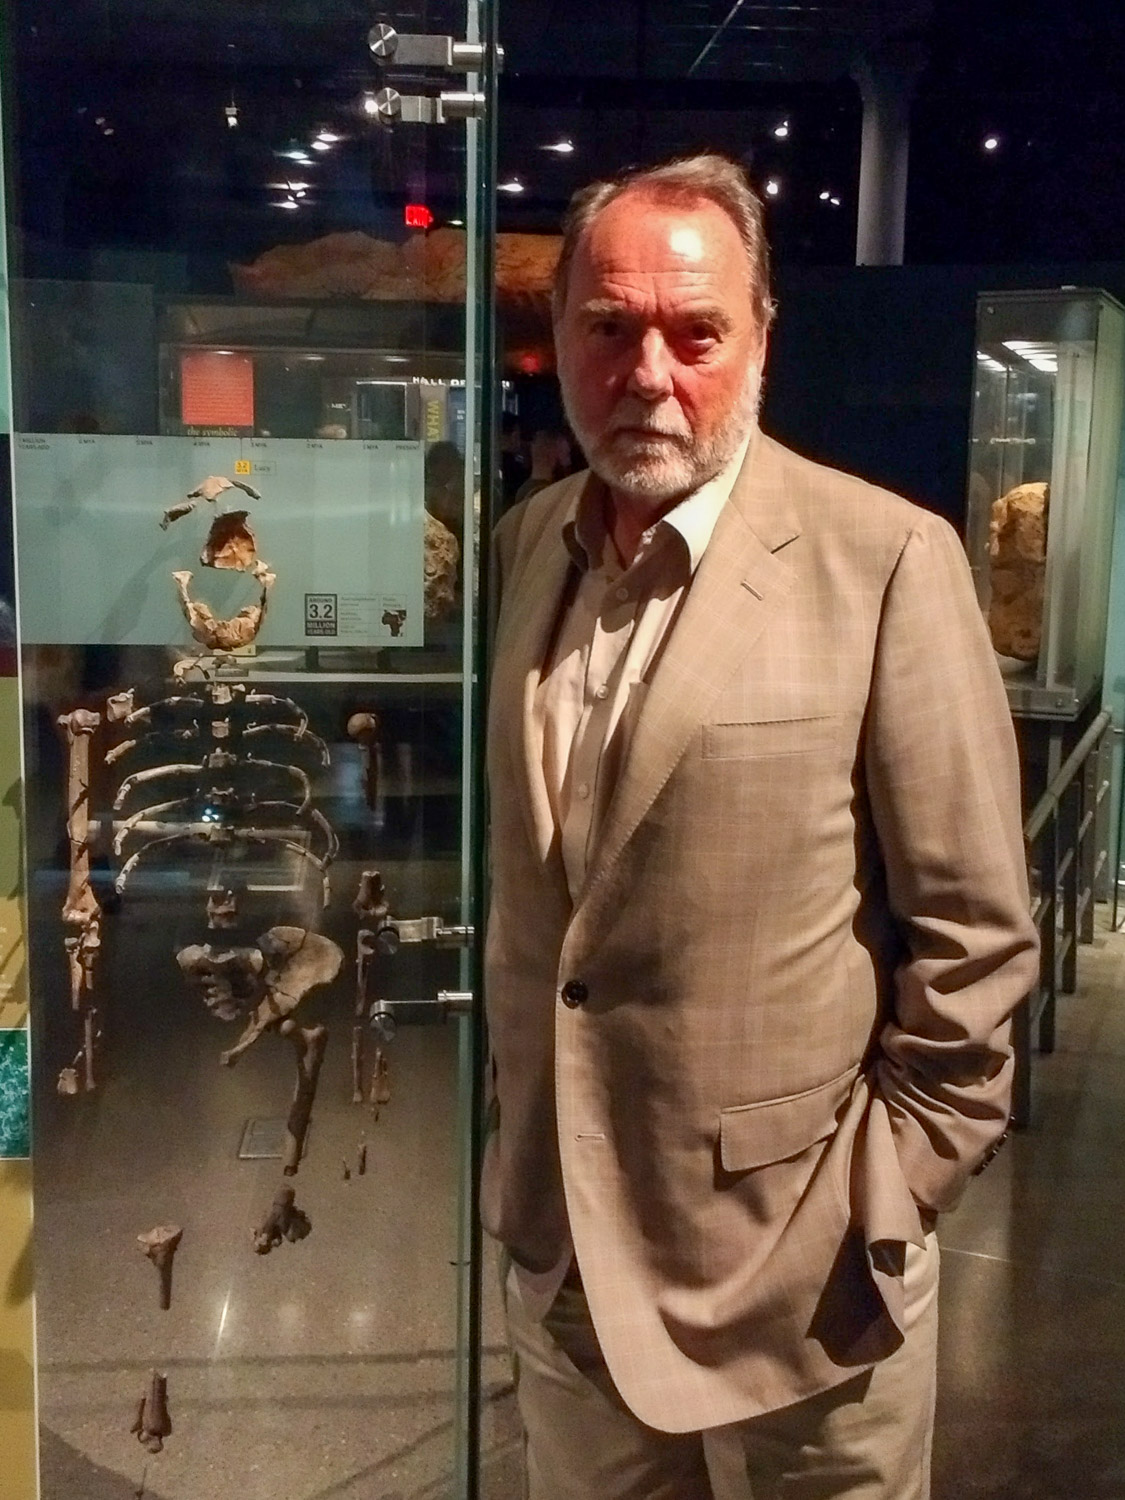 Ian Tattersall, Curator Emeritus of Human Origins, Division of Anthropology, American Museum of Natural History.